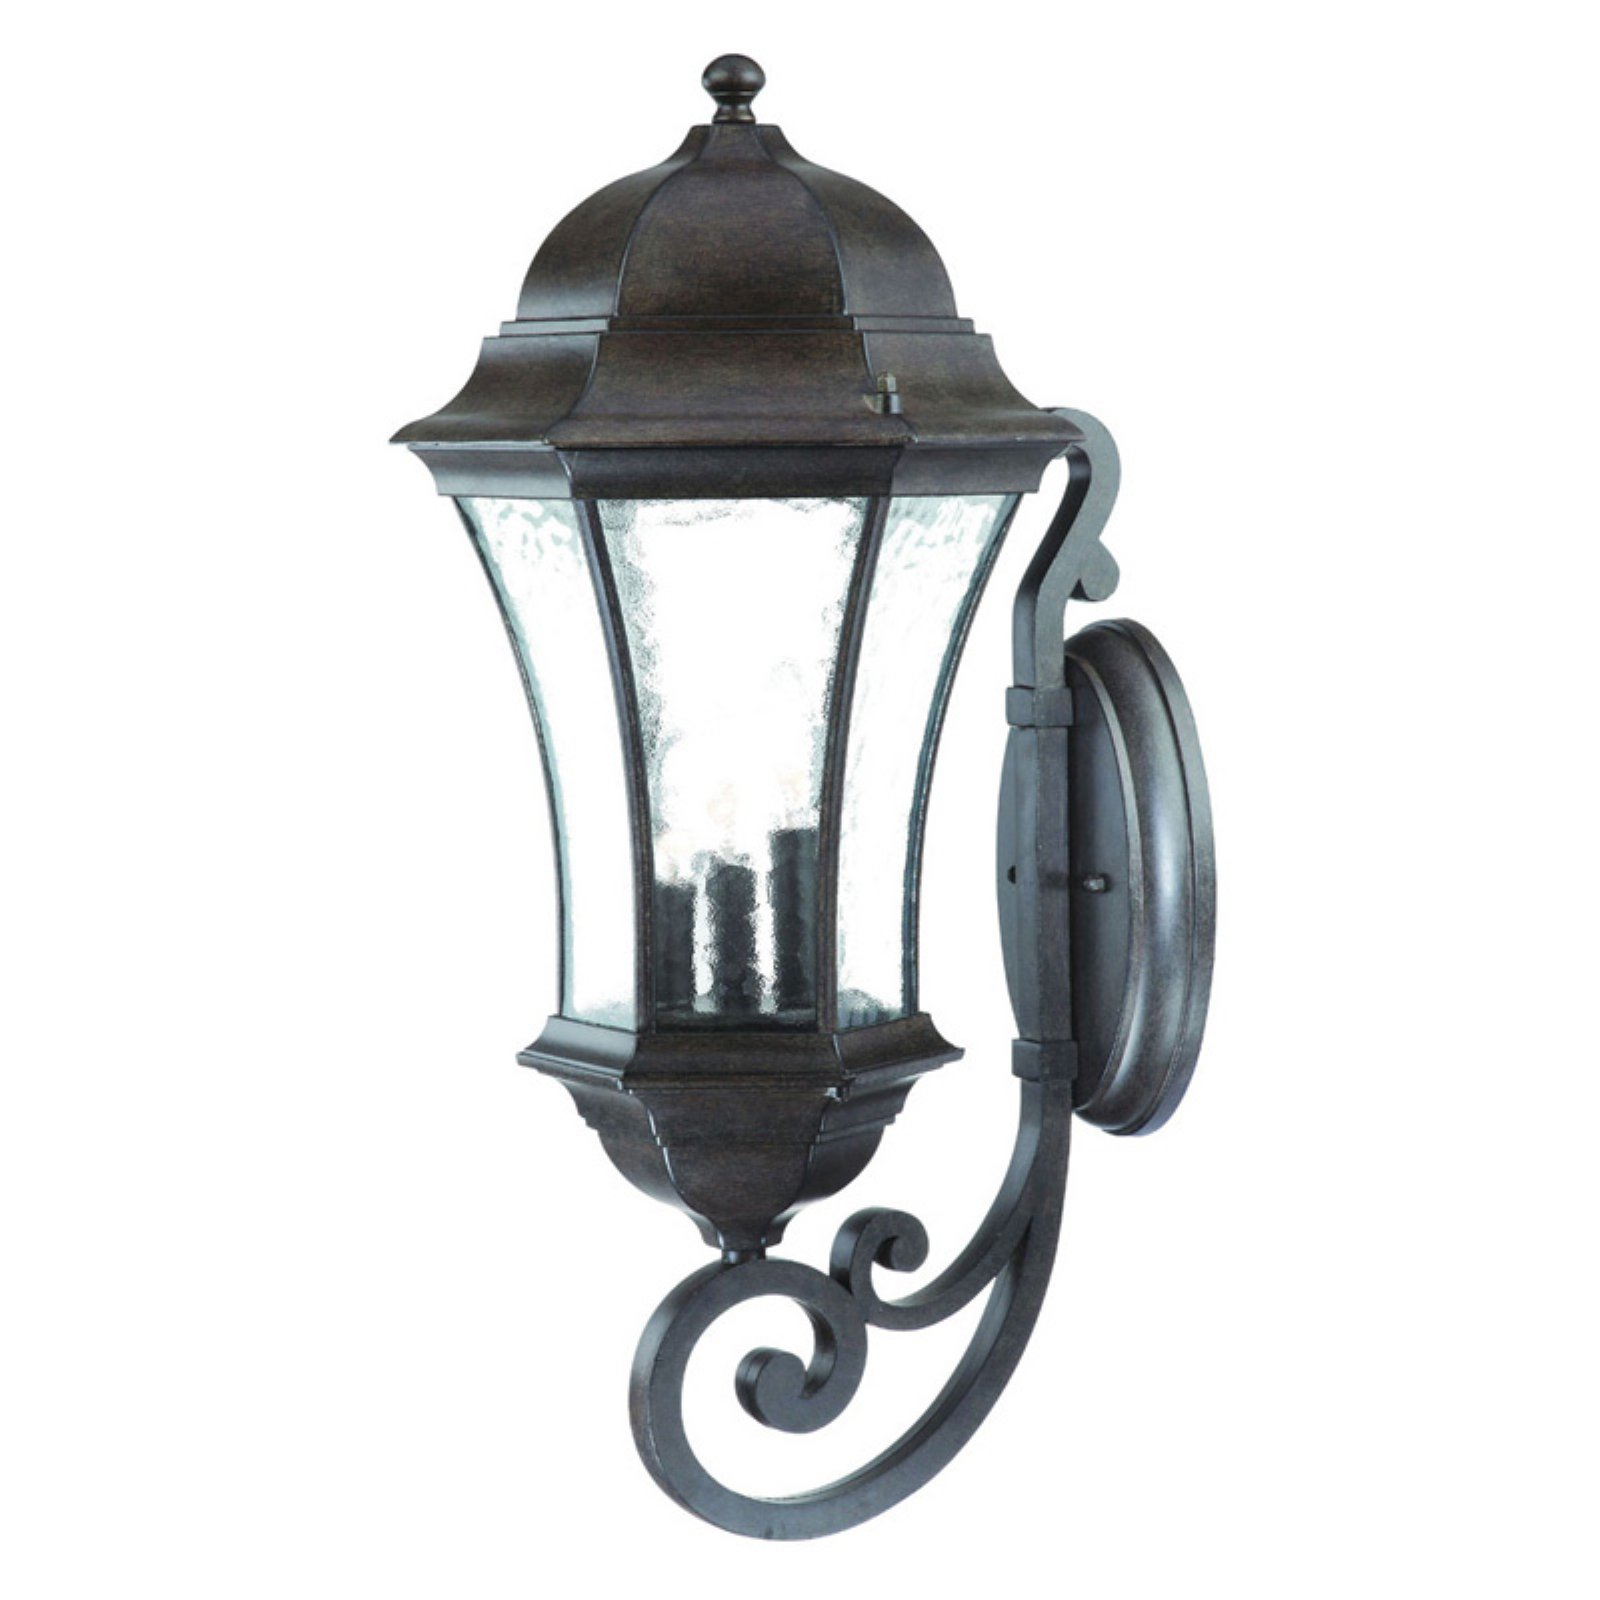 Acclaim Lighting Waverly 12.5 in. Outdoor Wall Mount Light Fixture